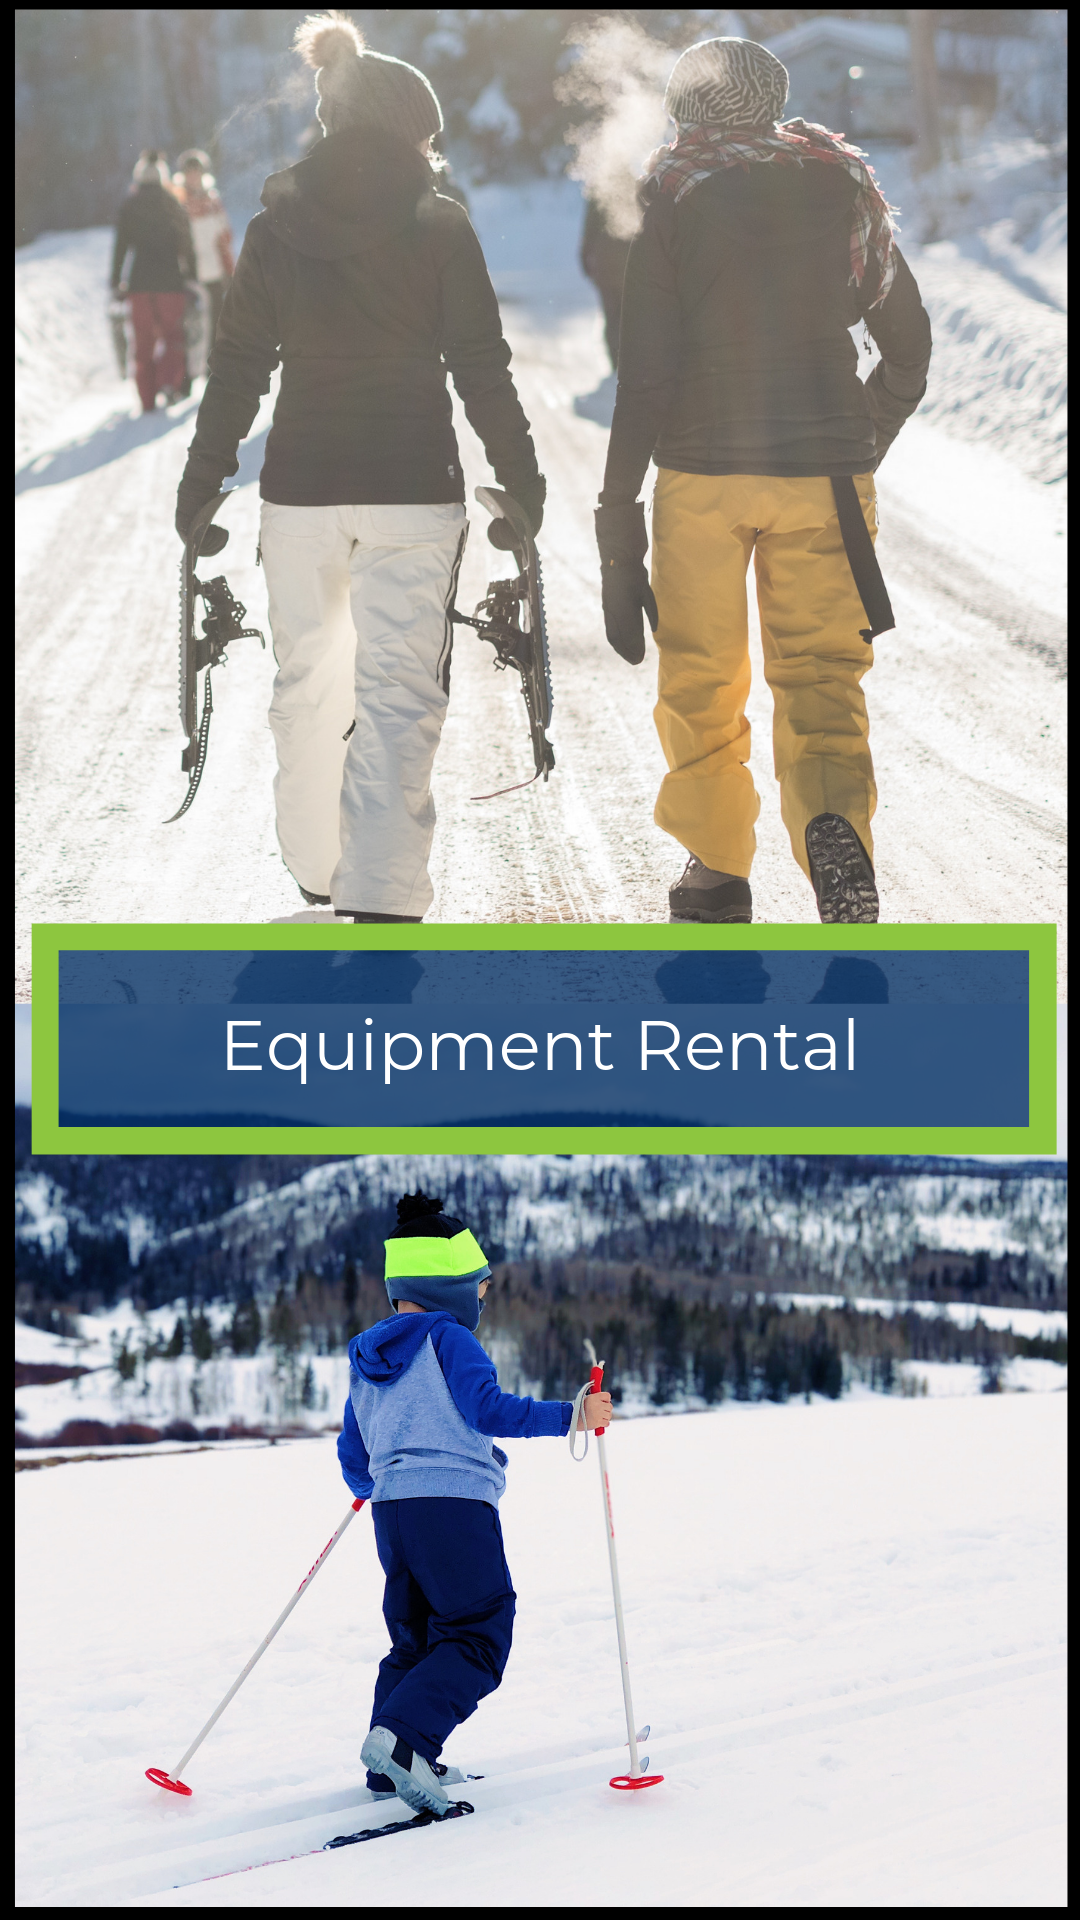 Town of Antigonish Equipment Rental Link